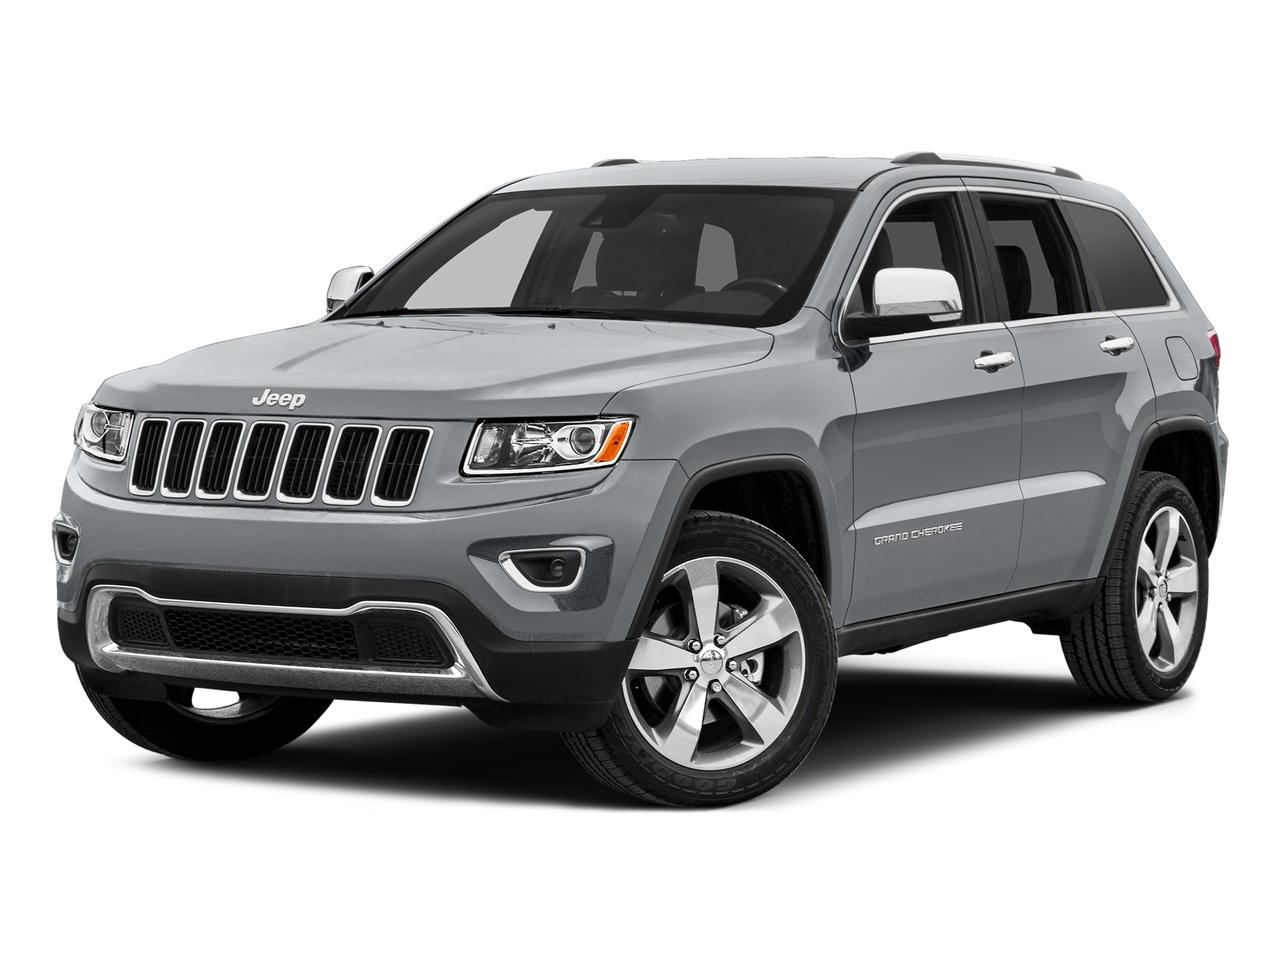 2015 Jeep Grand Cherokee Vehicle Photo in Lewisville, TX 75067